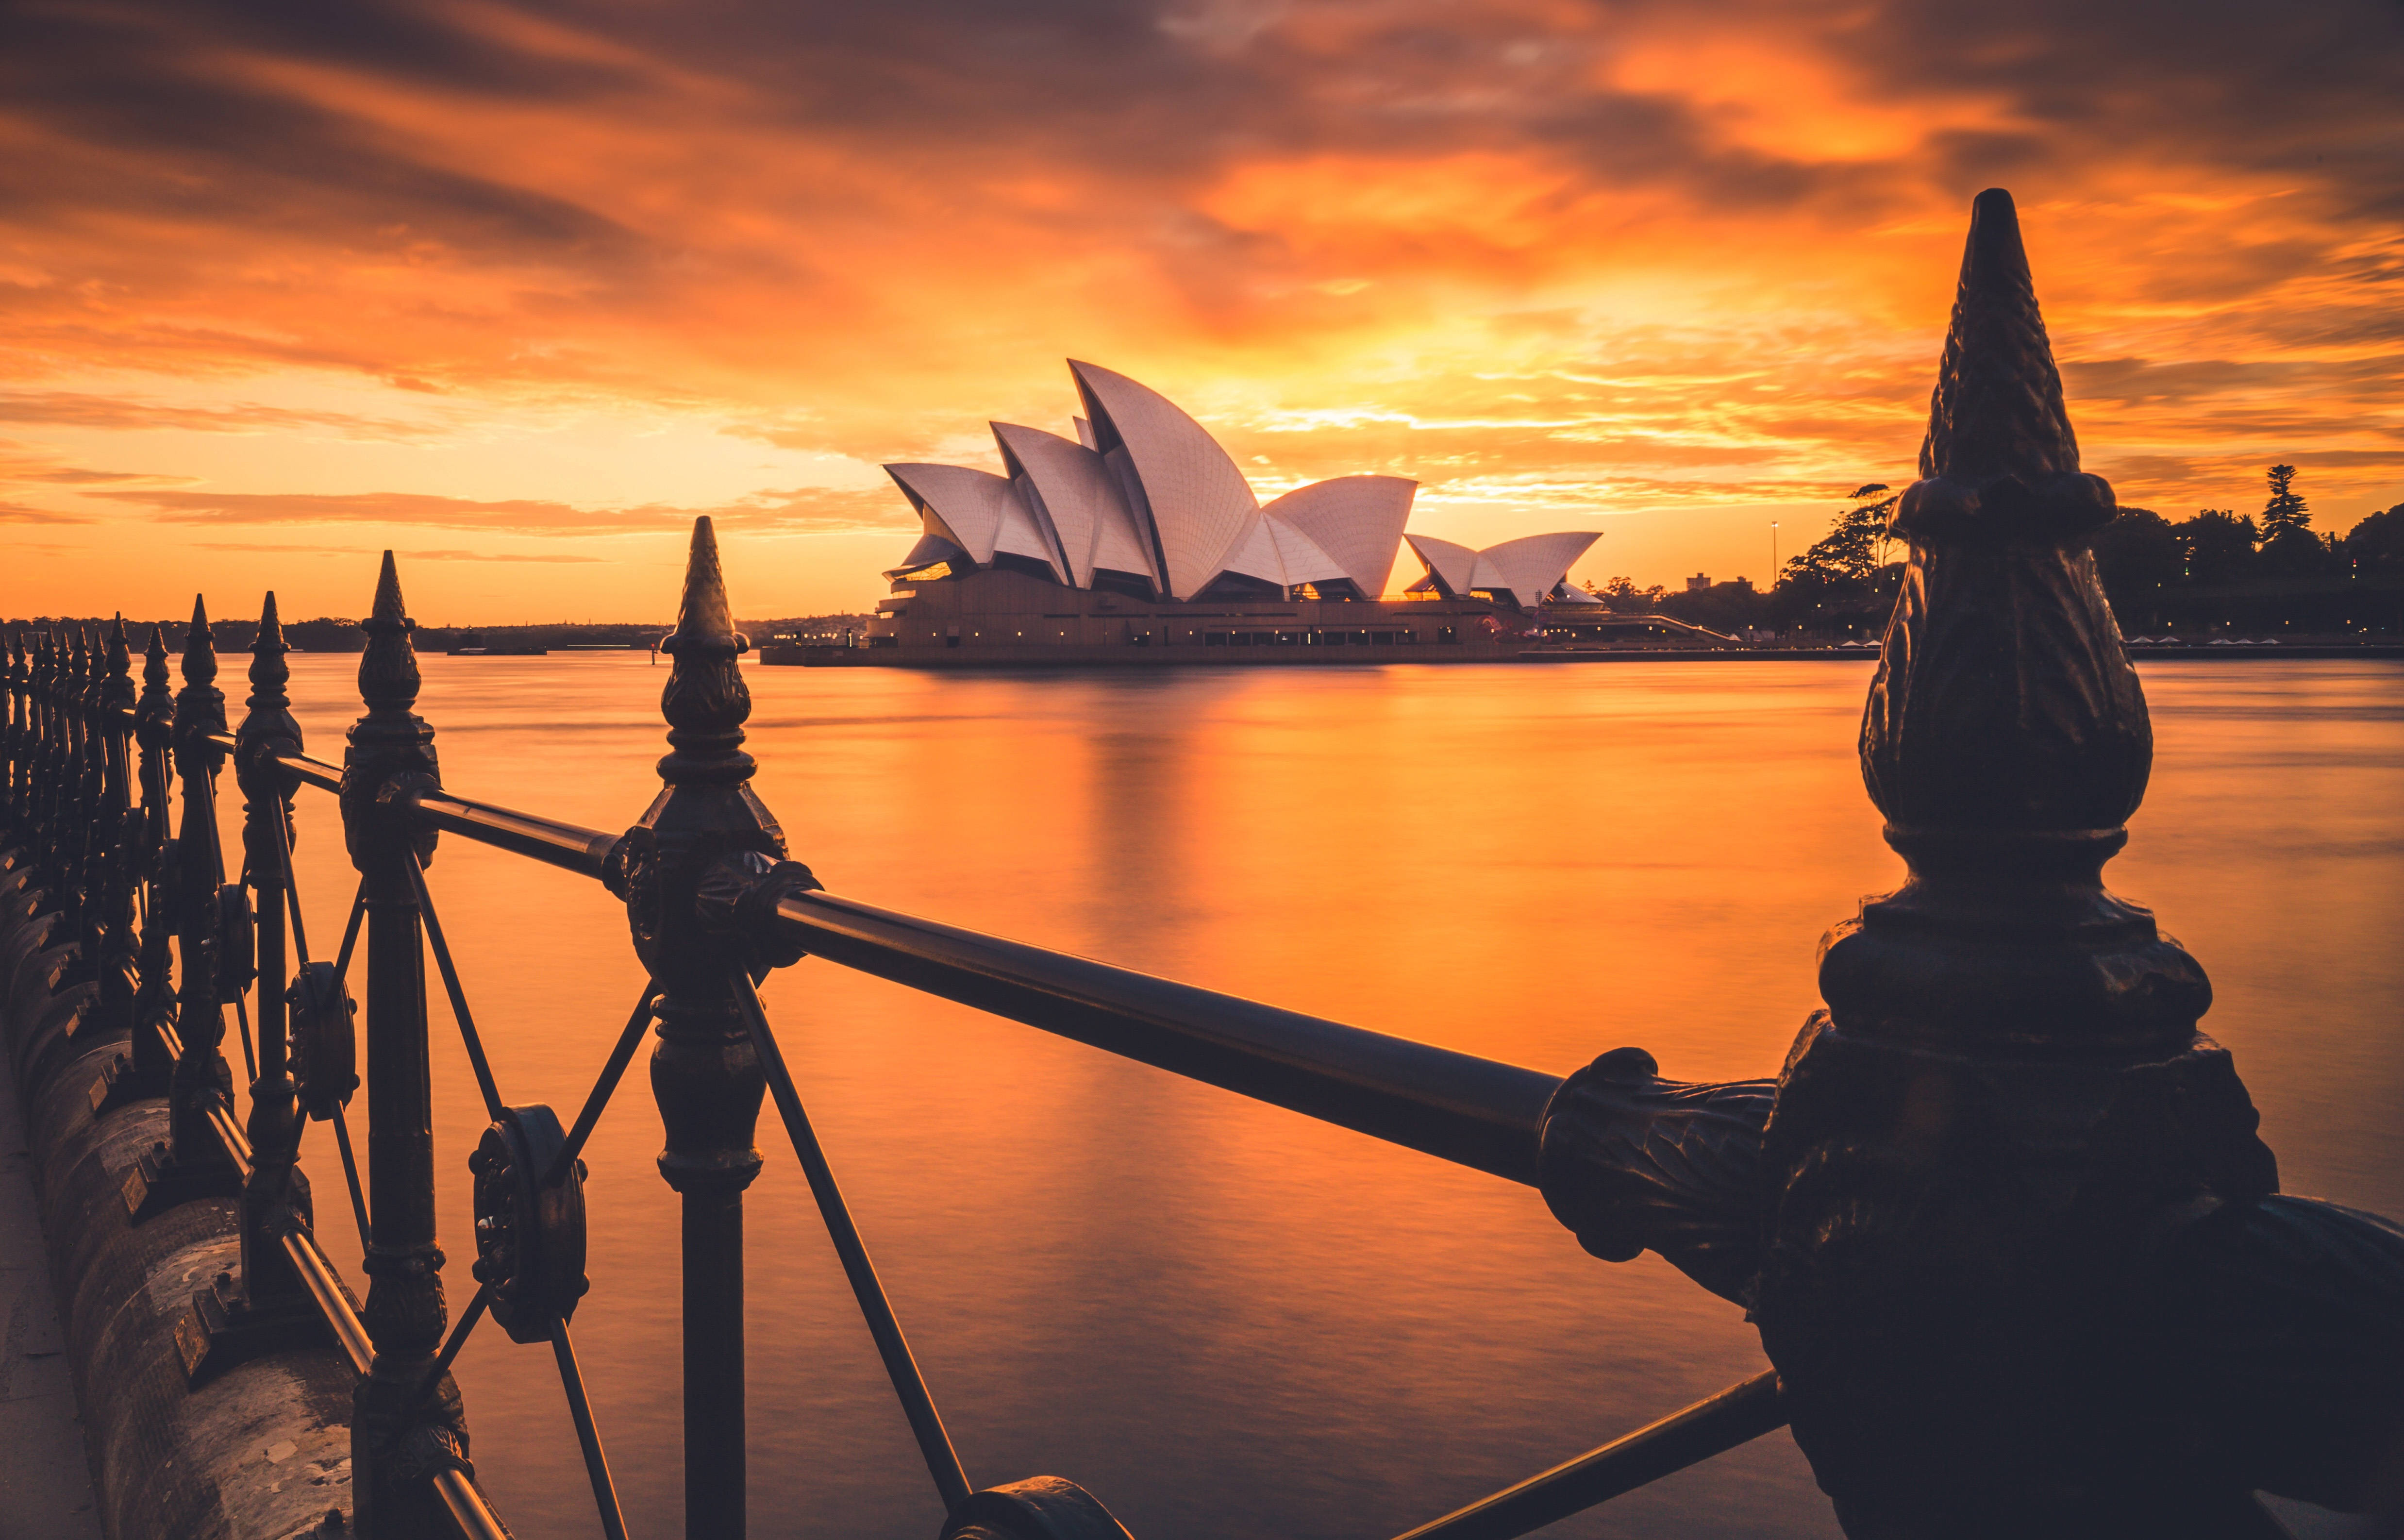 For PR visa of Australia which medical tests are required